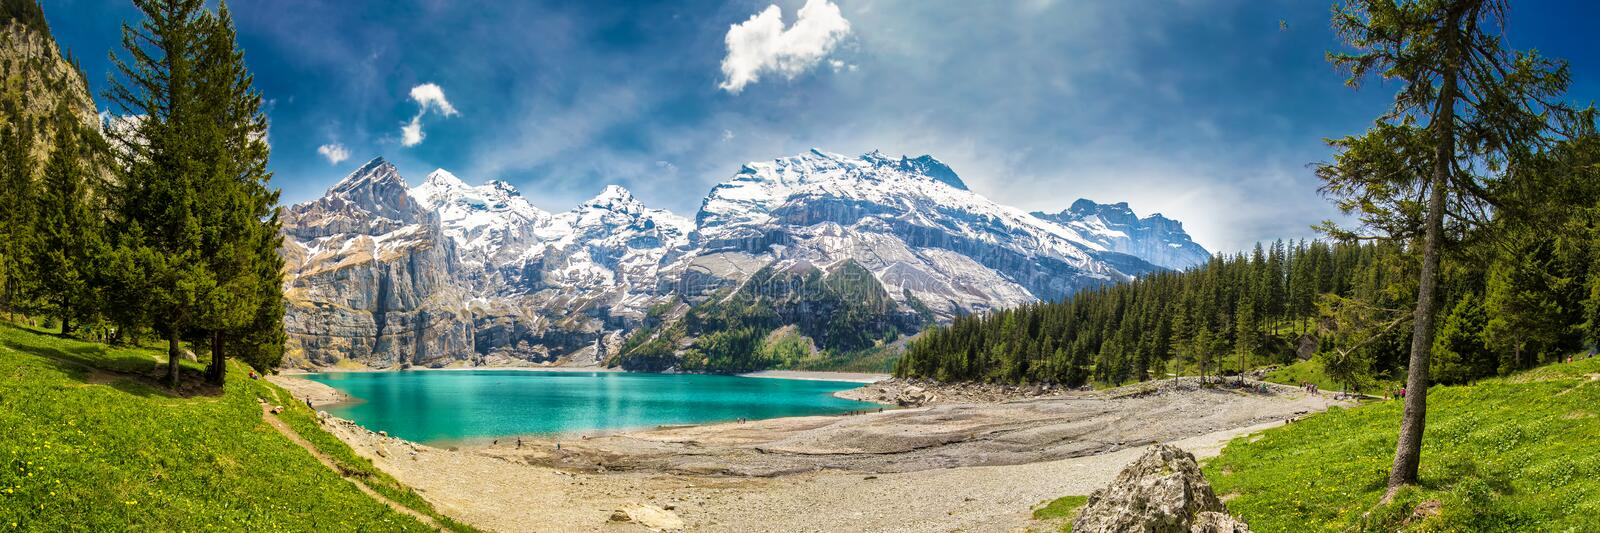 Amazing tourquise Oeschinnensee with waterfalls, wooden chalet and Swiss Alps, Berner Oberland, Switzerland royalty free stock images